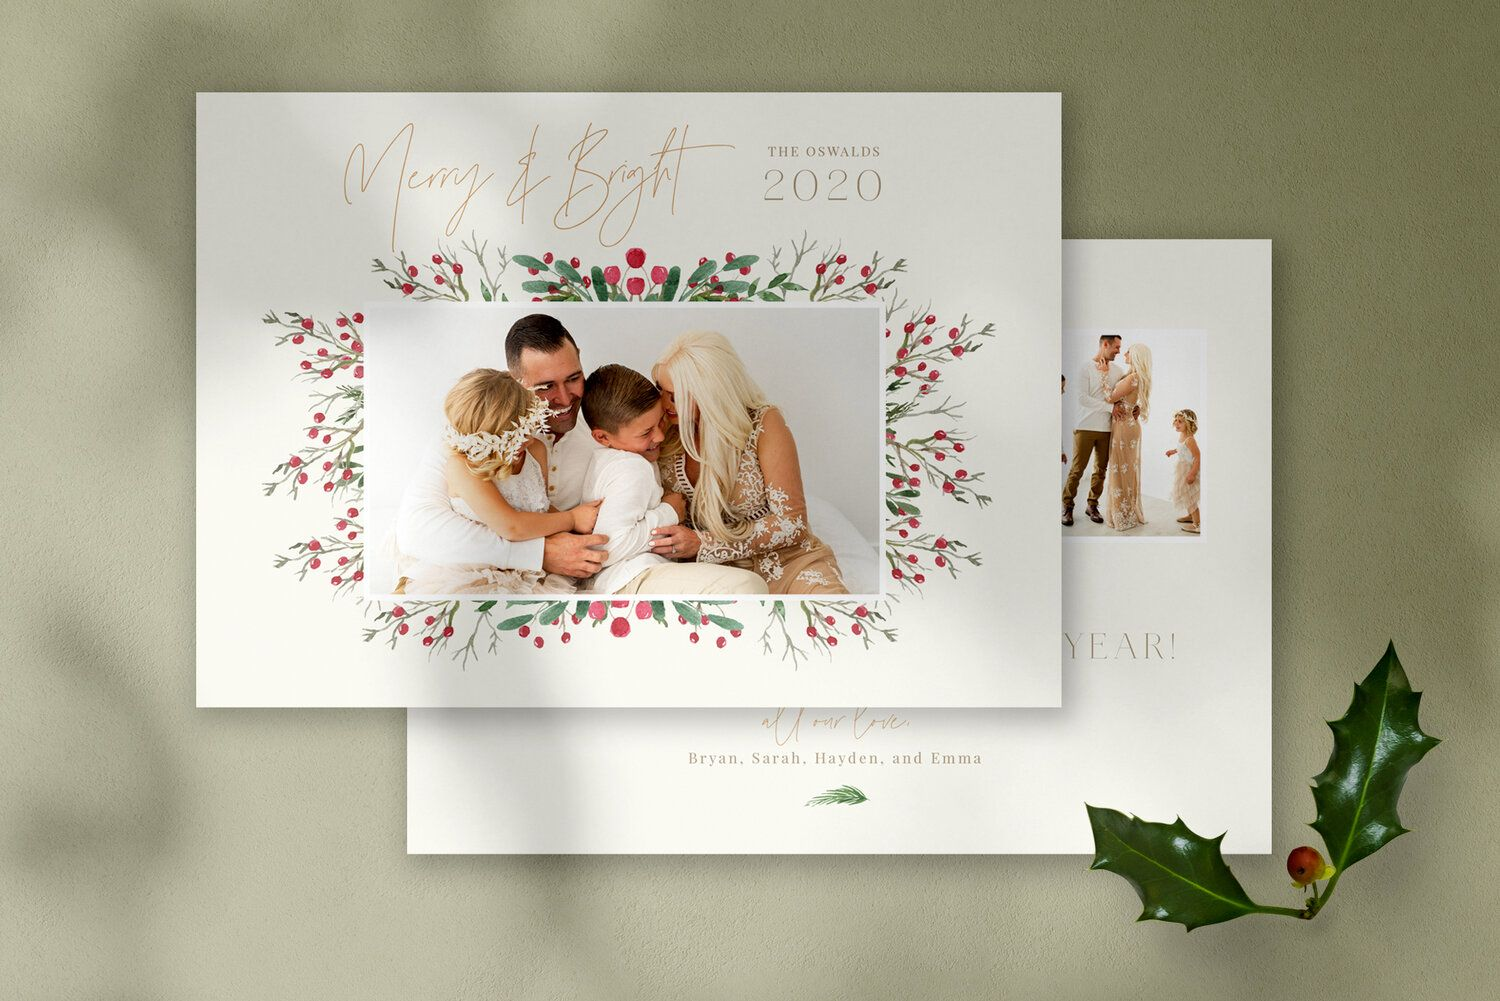 Merry Bright Christmas Photo Card Template Photoshop Template By Stephanie Design Christmas Photo Card Template Holiday Photo Cards Template Christmas Card Template